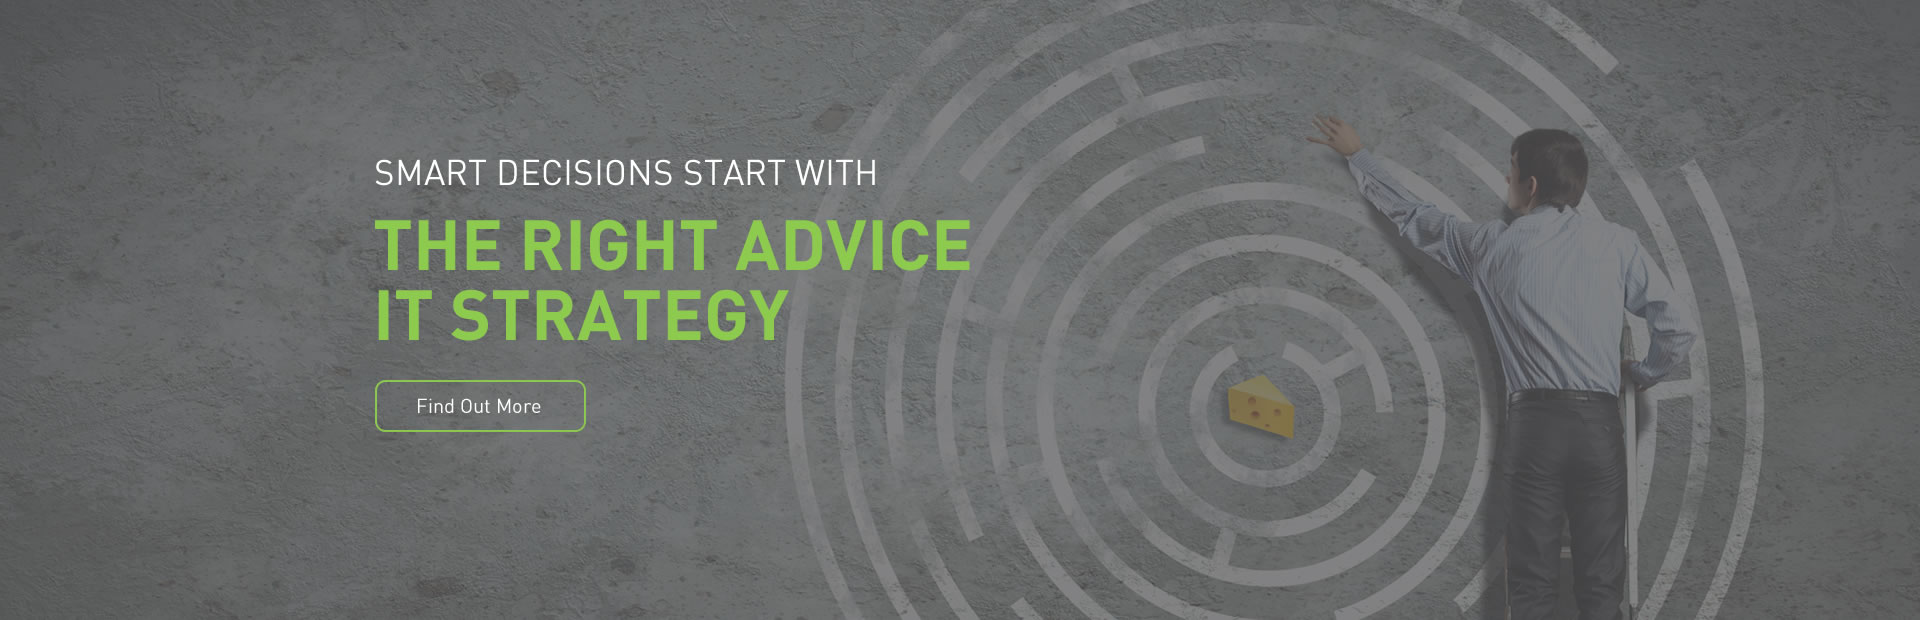 The right advice, IT strategy